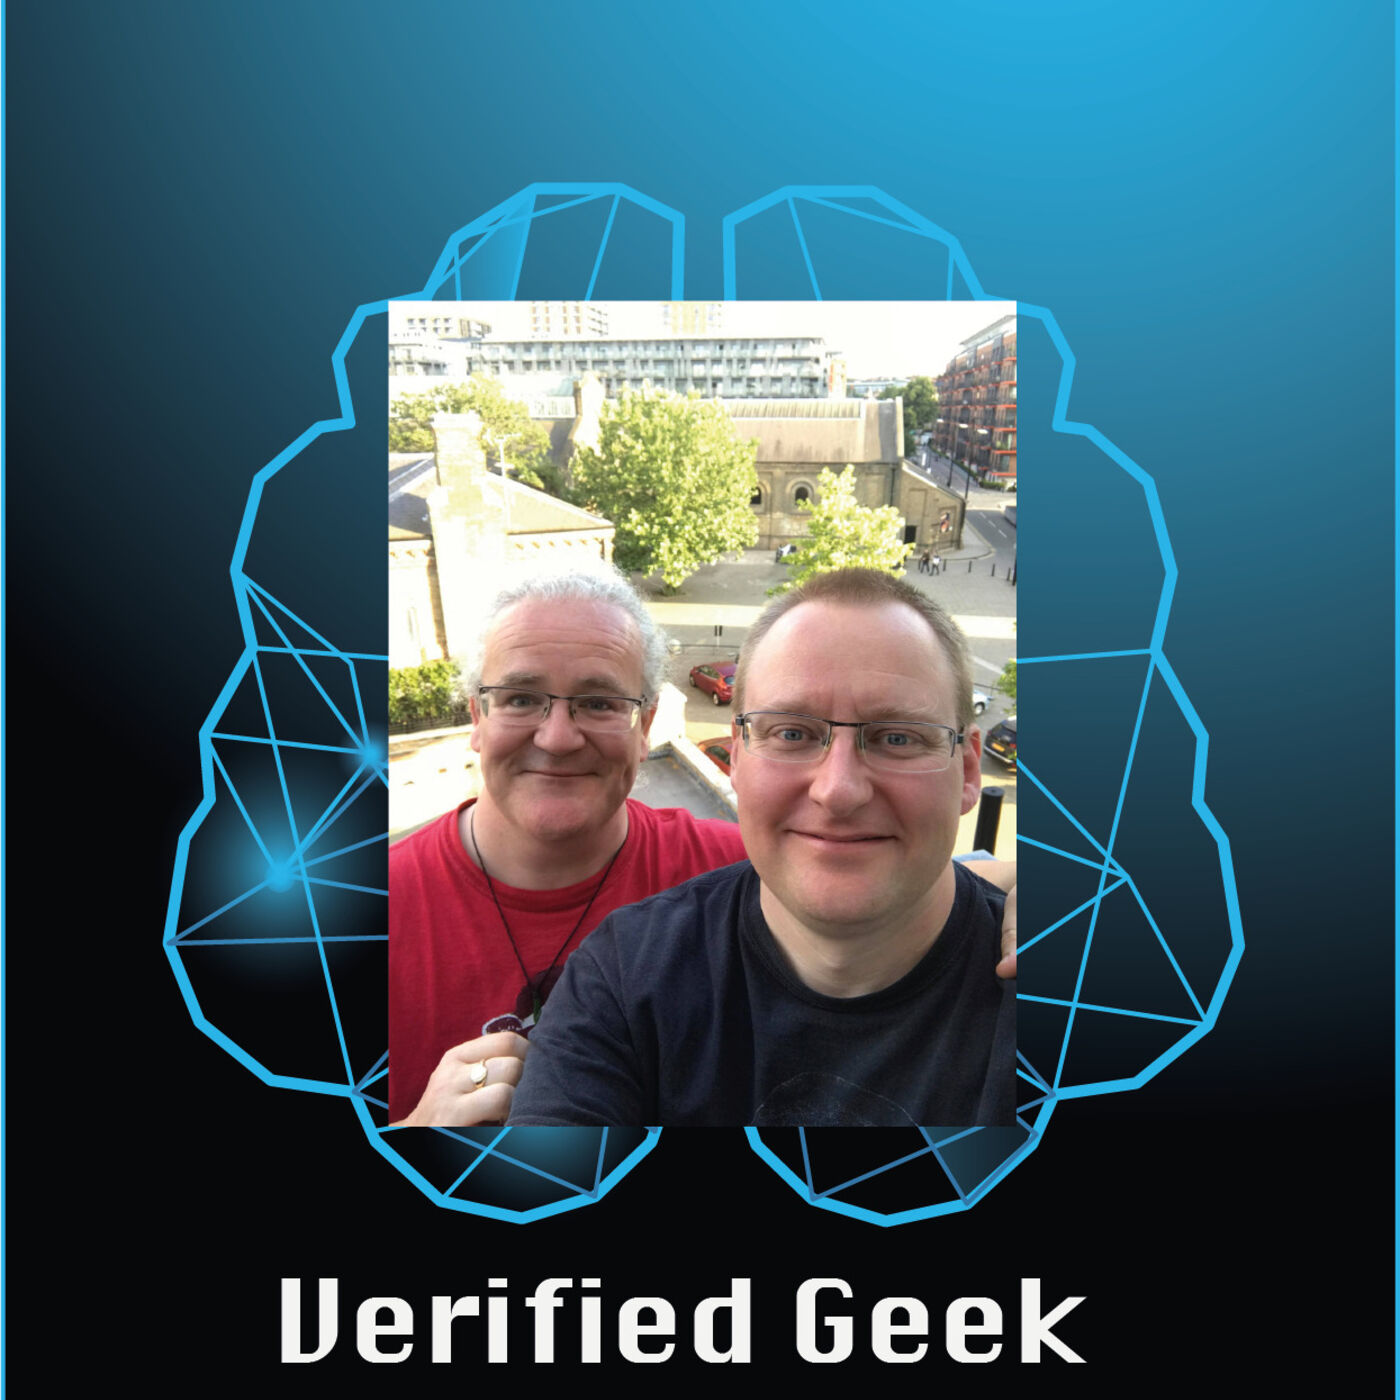 Jeff And Dan - Do you need a degree to work in Tech?